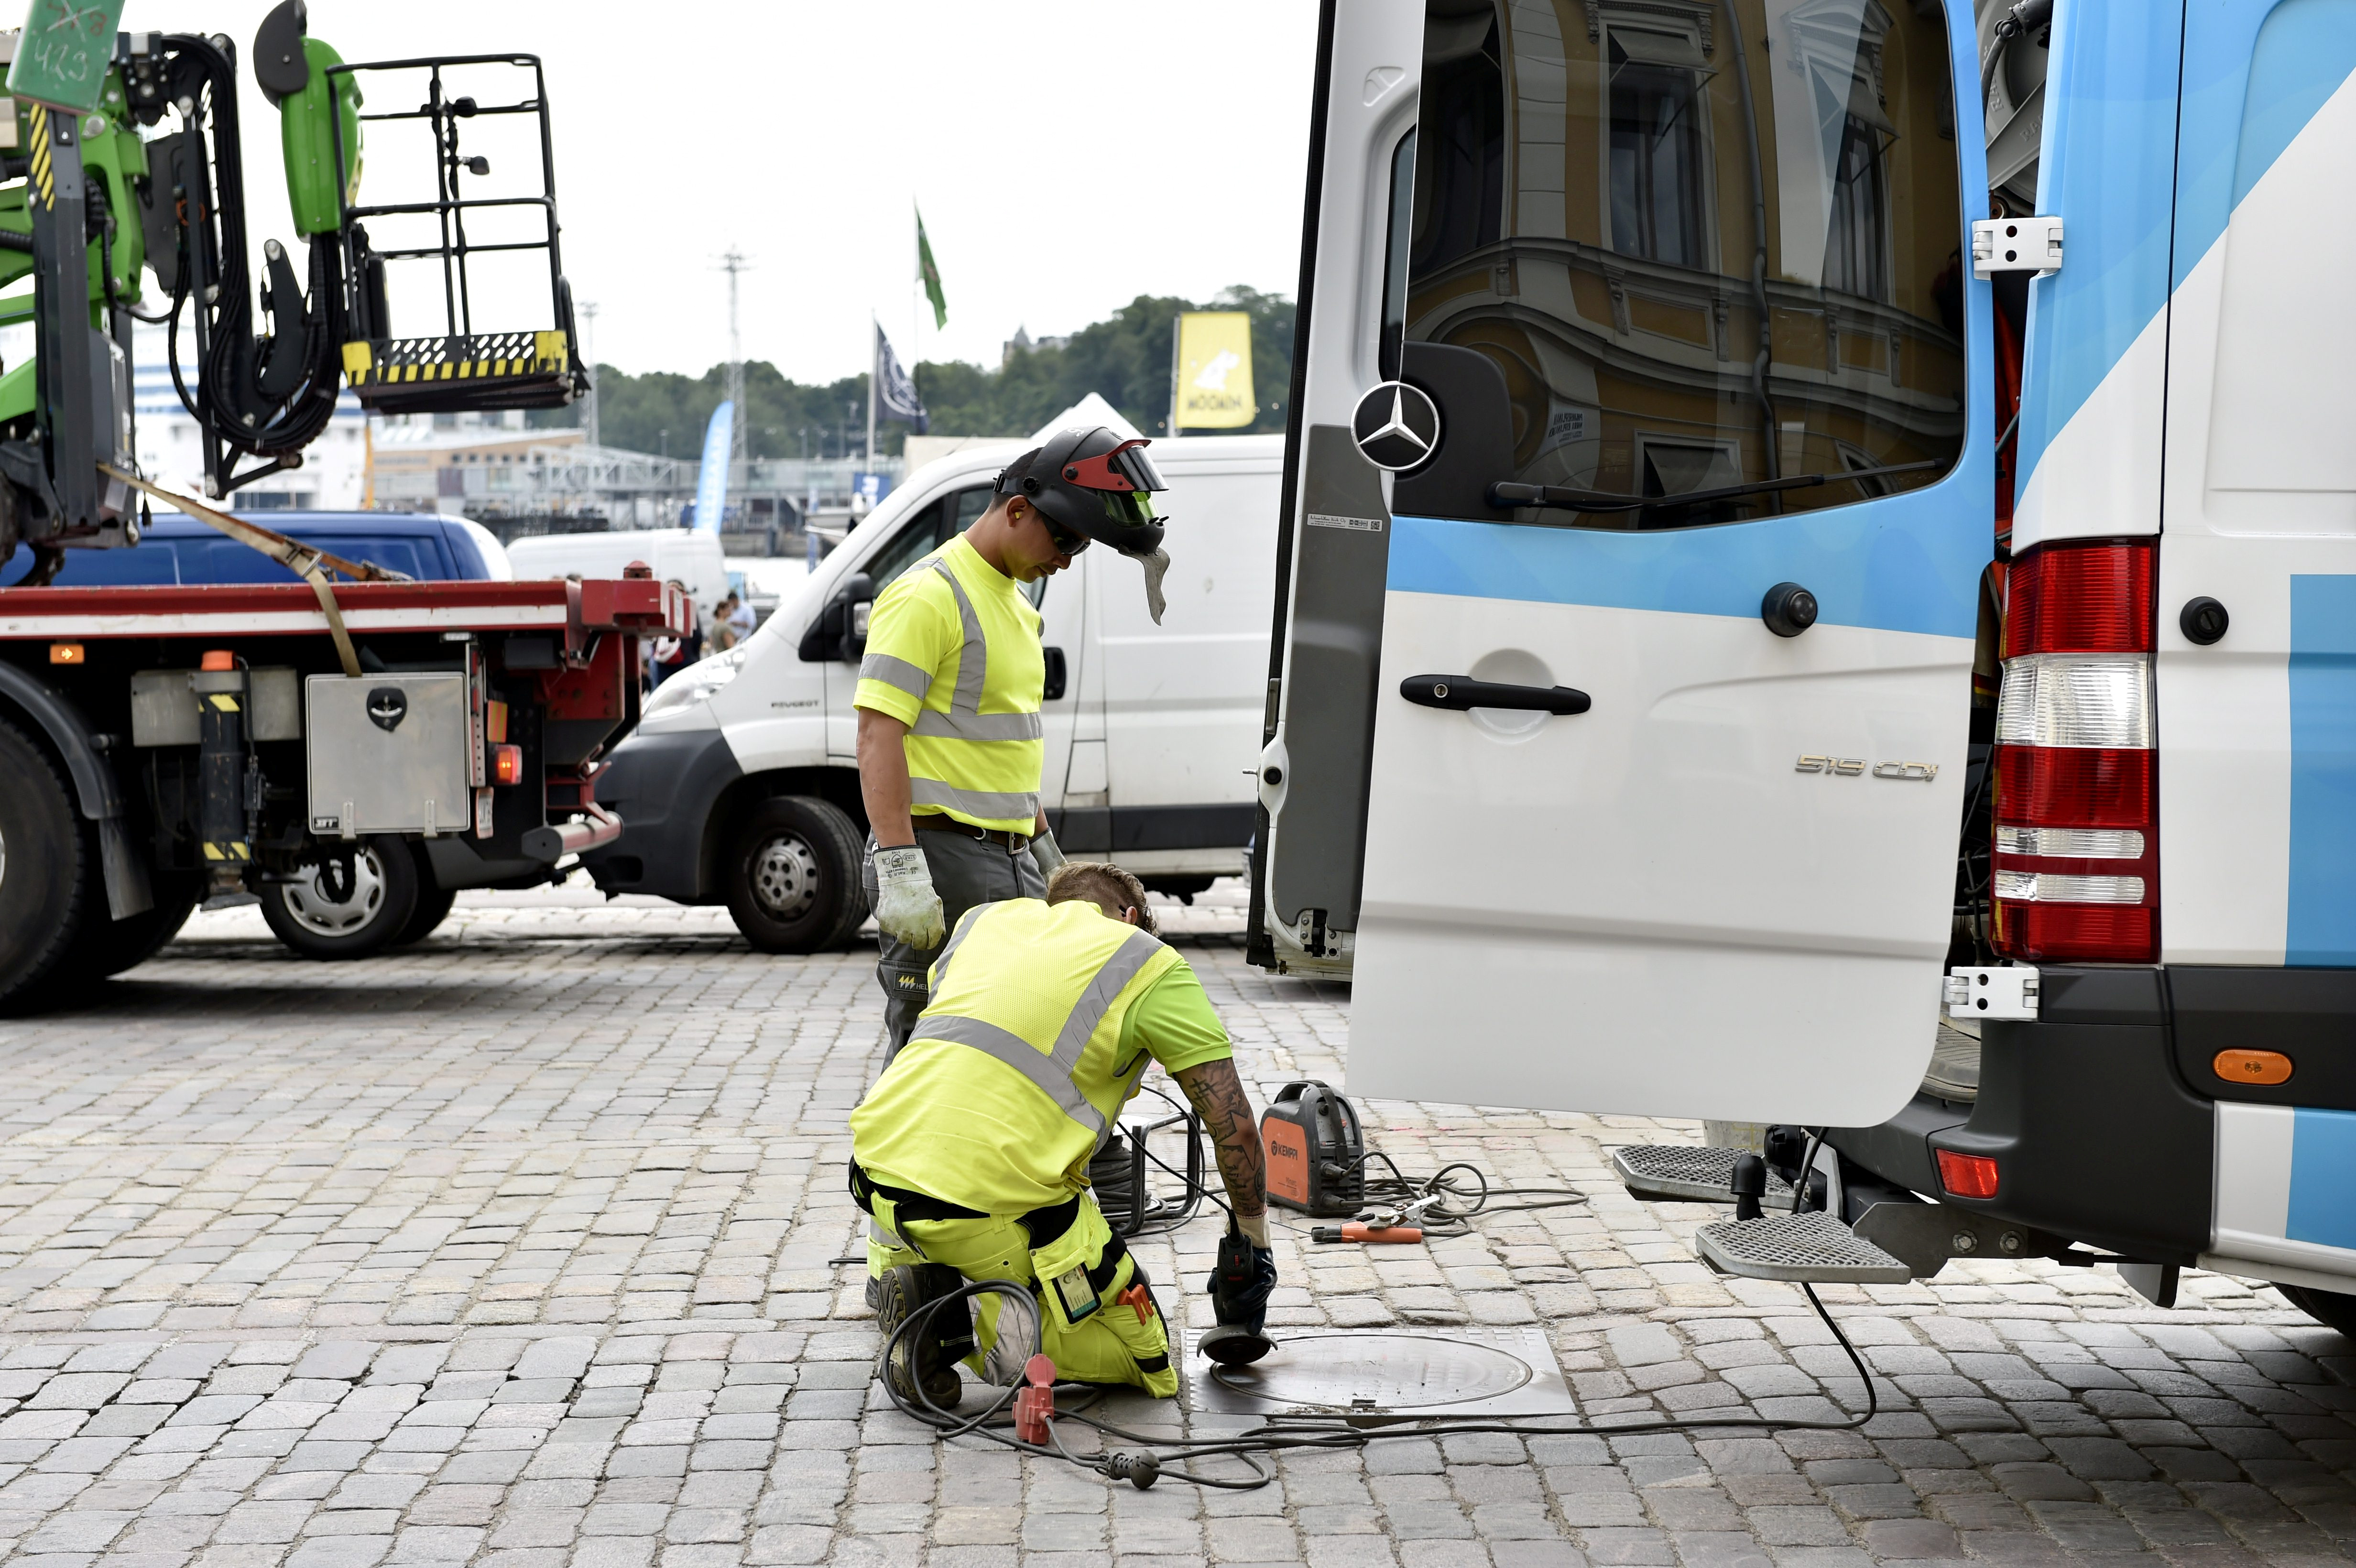 Security measures are taken near the presidential palace ahead of the meeting between U.S. President Donald Trump and Russian President Vladimir Putin in Helsinki, Finland, July 12, 2018.